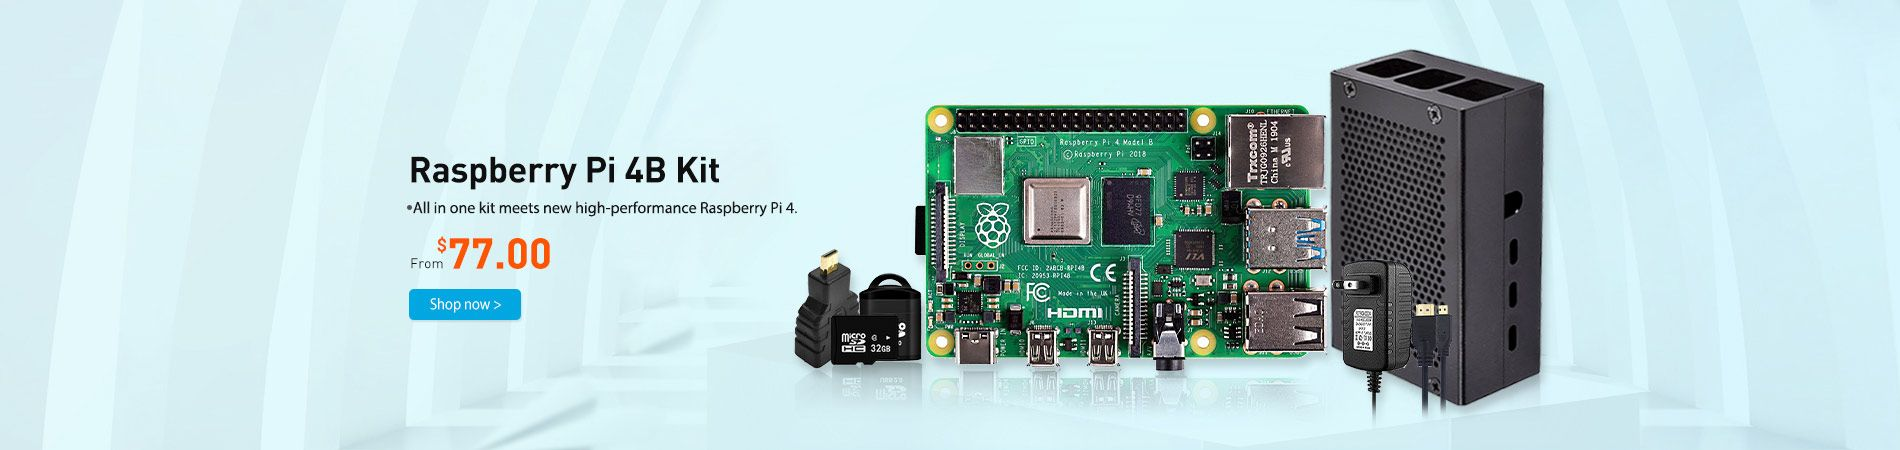 /raspberry-pi-4-model-b-with-4gb-ram.html